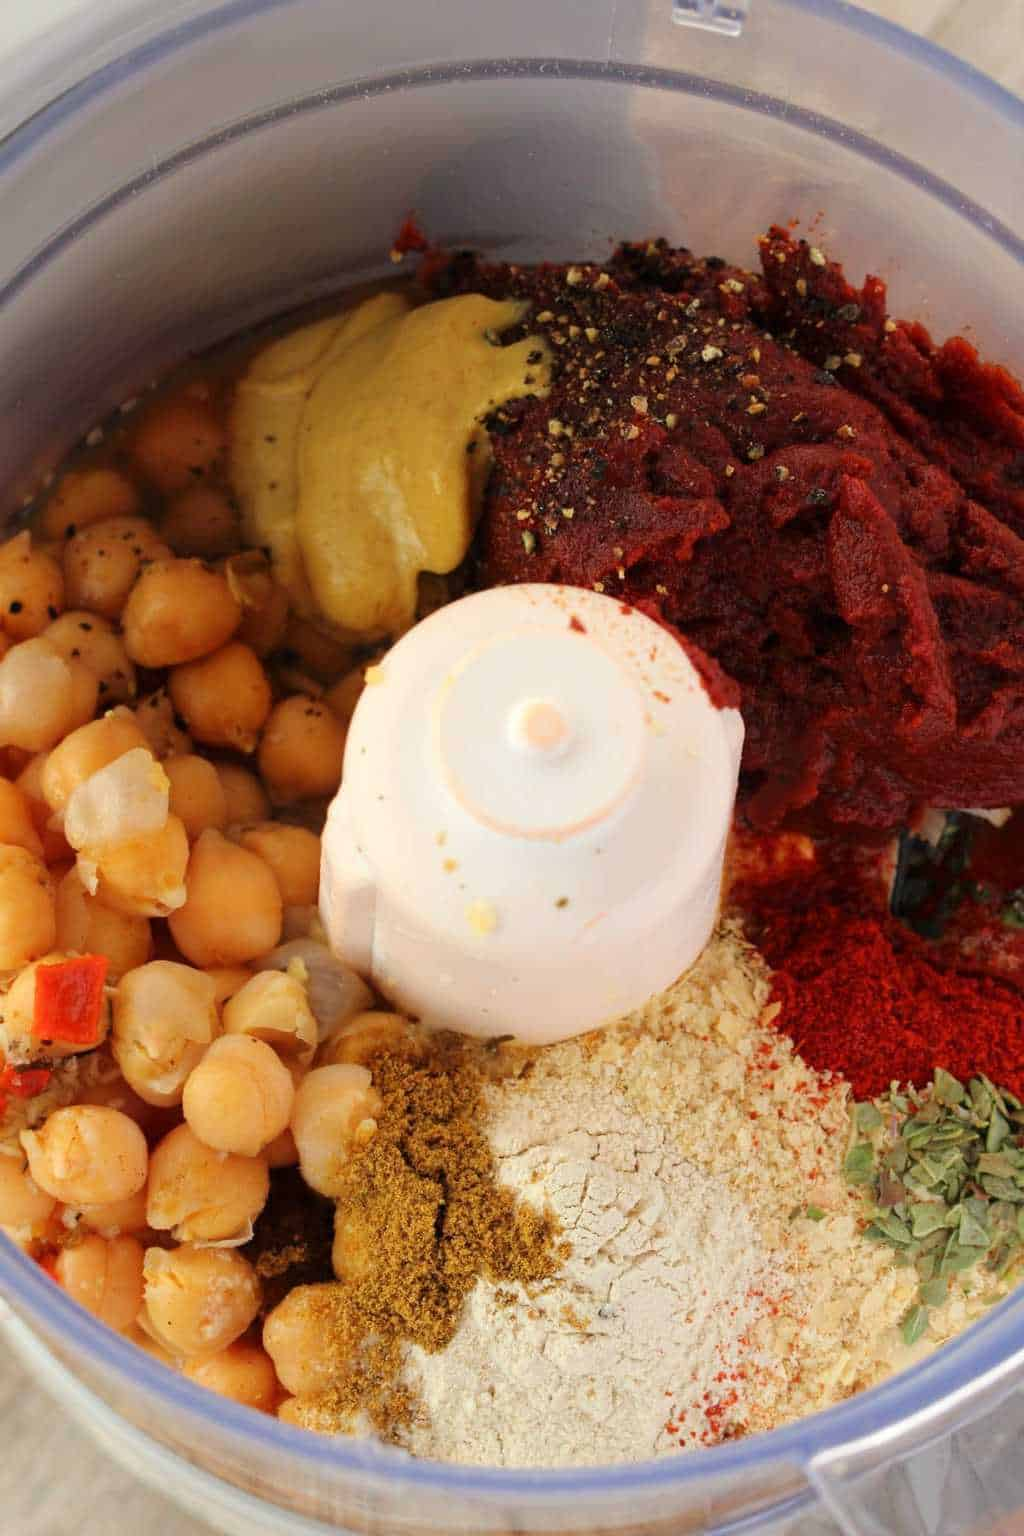 Chickpeas, tomato paste and spices in a food processor